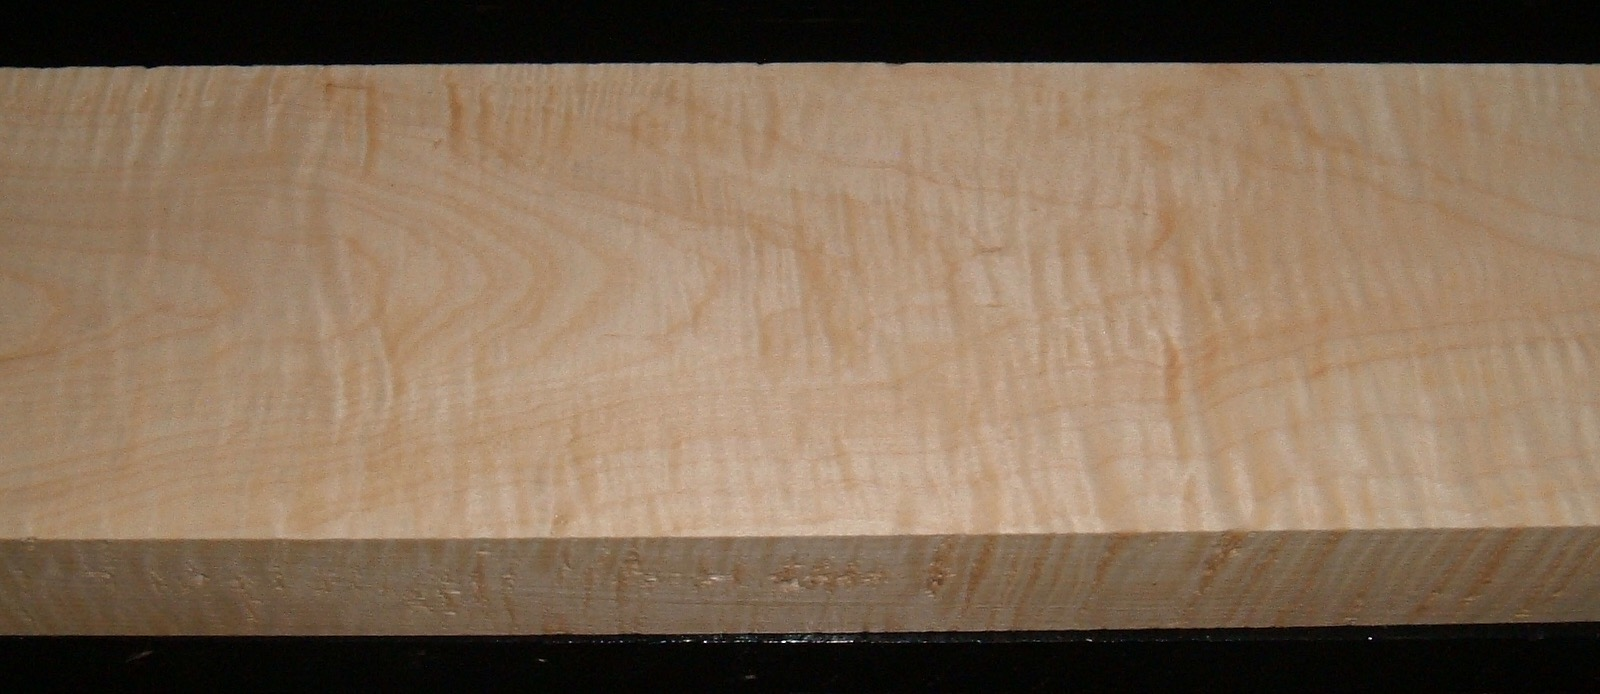 S-2183, 1-15/16 x5-1/8x39, Curly Tiger Maple